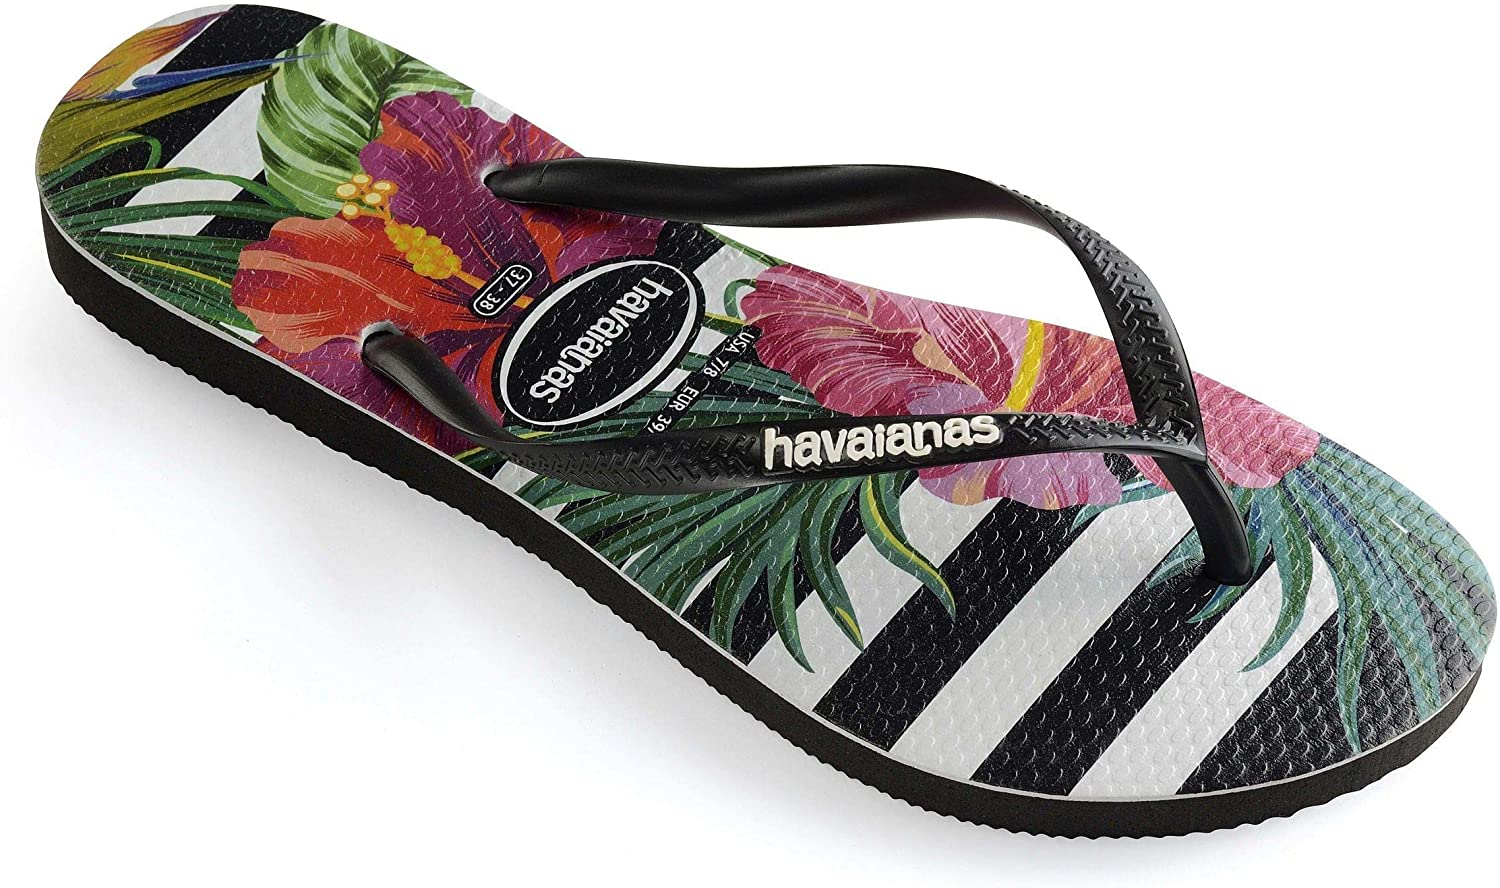 Havaianas Women's Slim Flip Flop Sandals, Tropical Floral Black